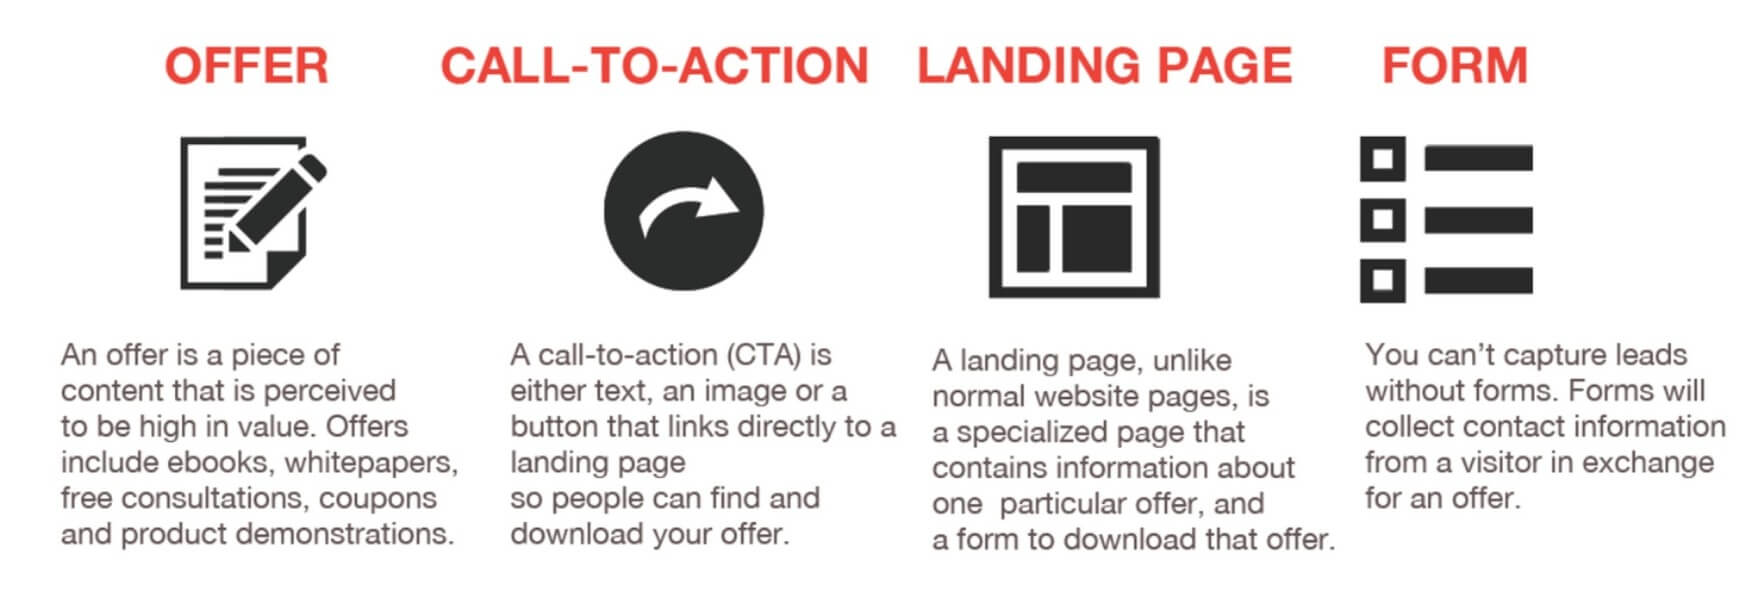 Call-To-Action For Lead Generation